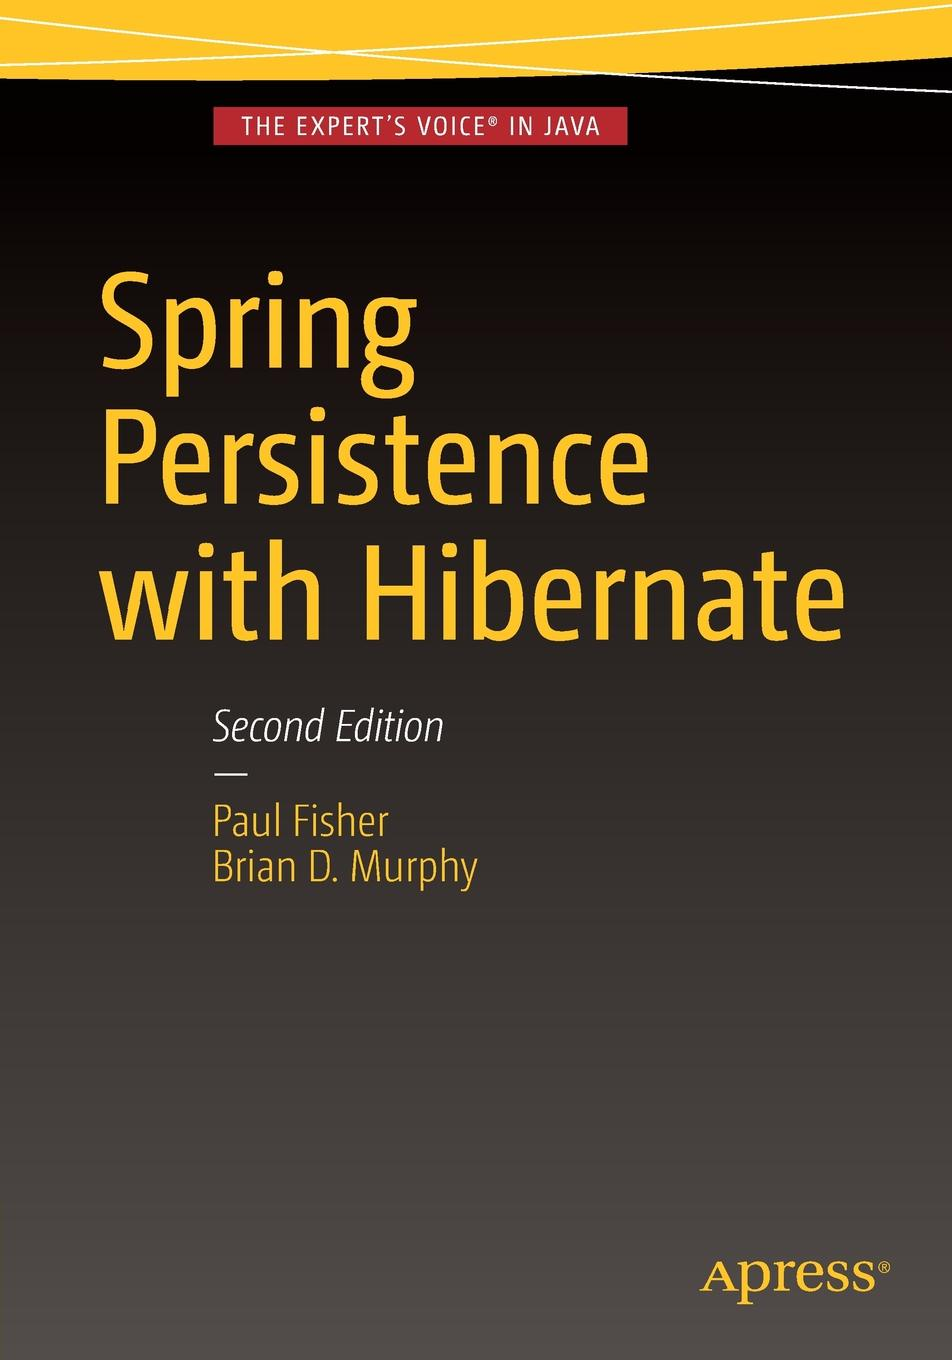 Paul Fisher, Brian D. Murphy Spring Persistence with Hibernate